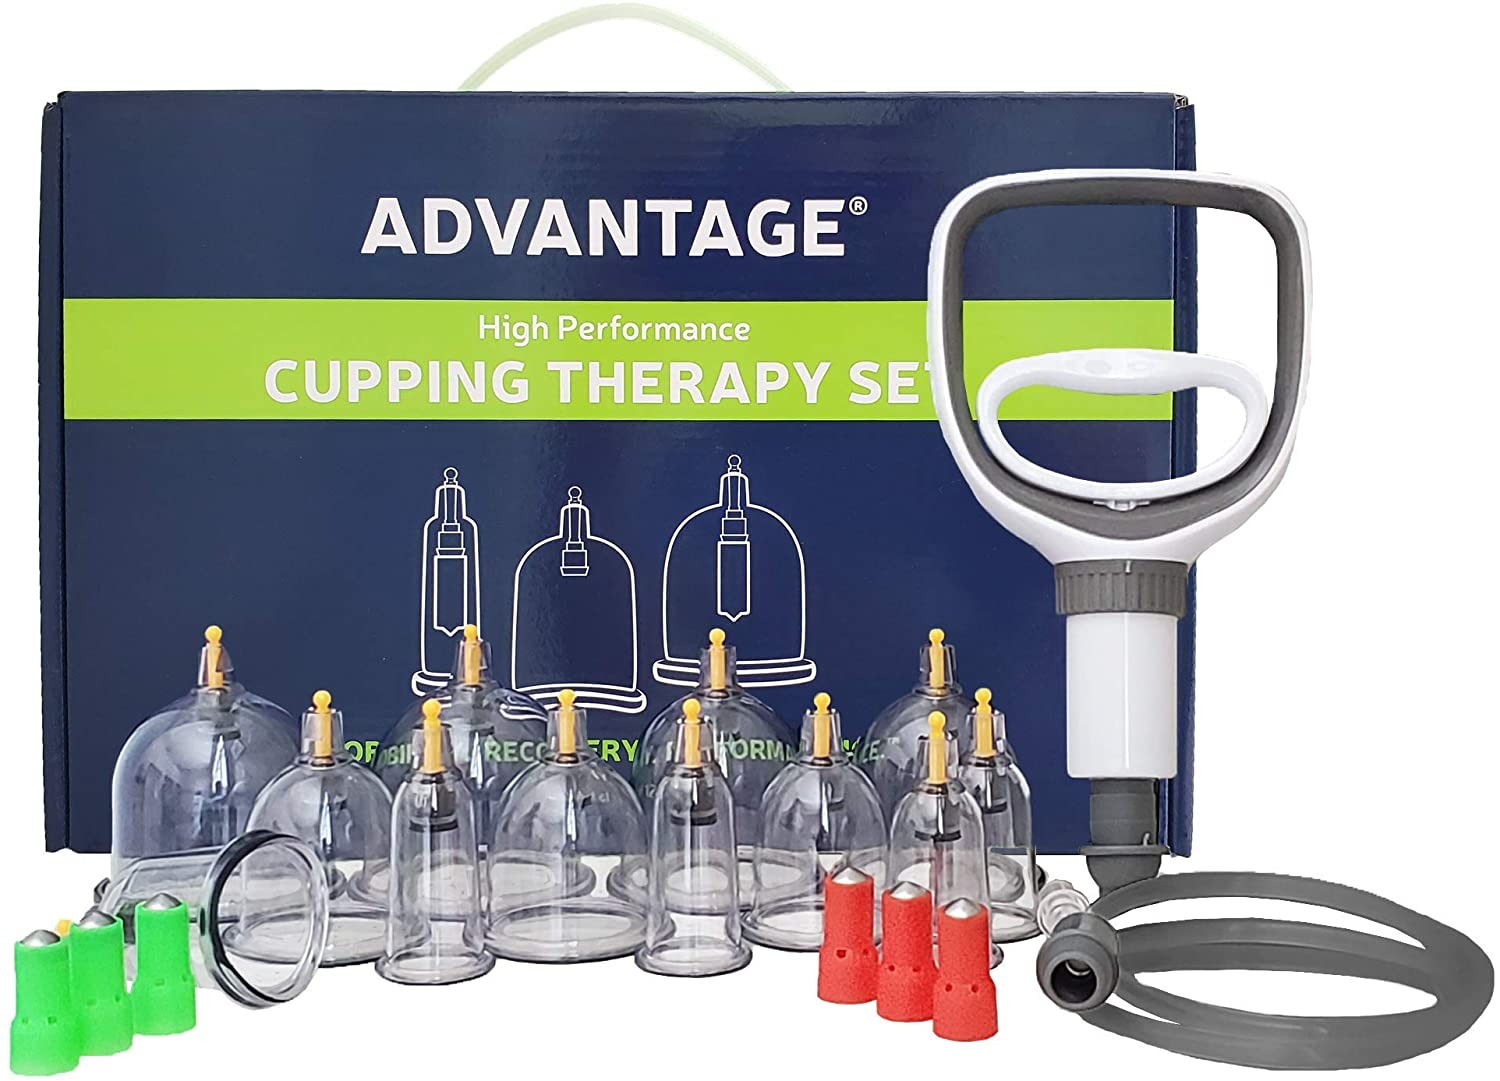 ADVANTAGE Professional Cupping Therapy Set